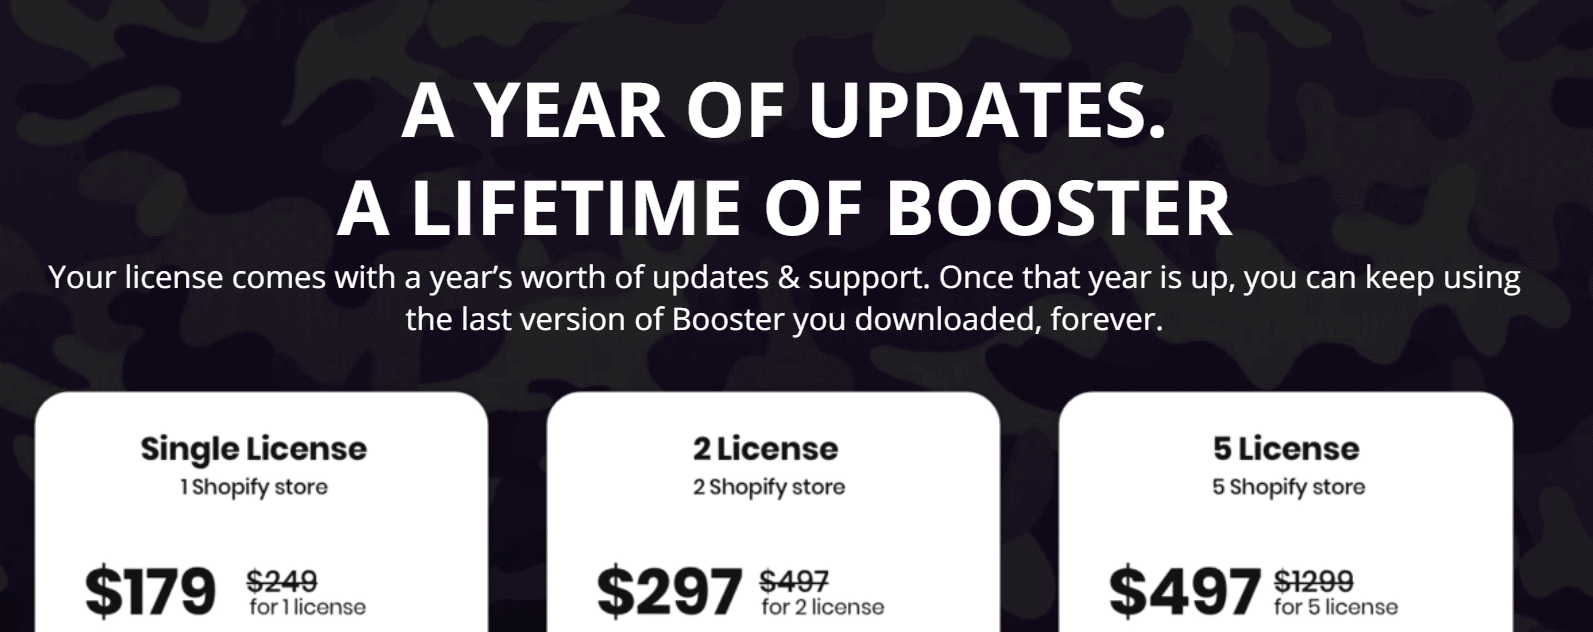 pricing plans of booster